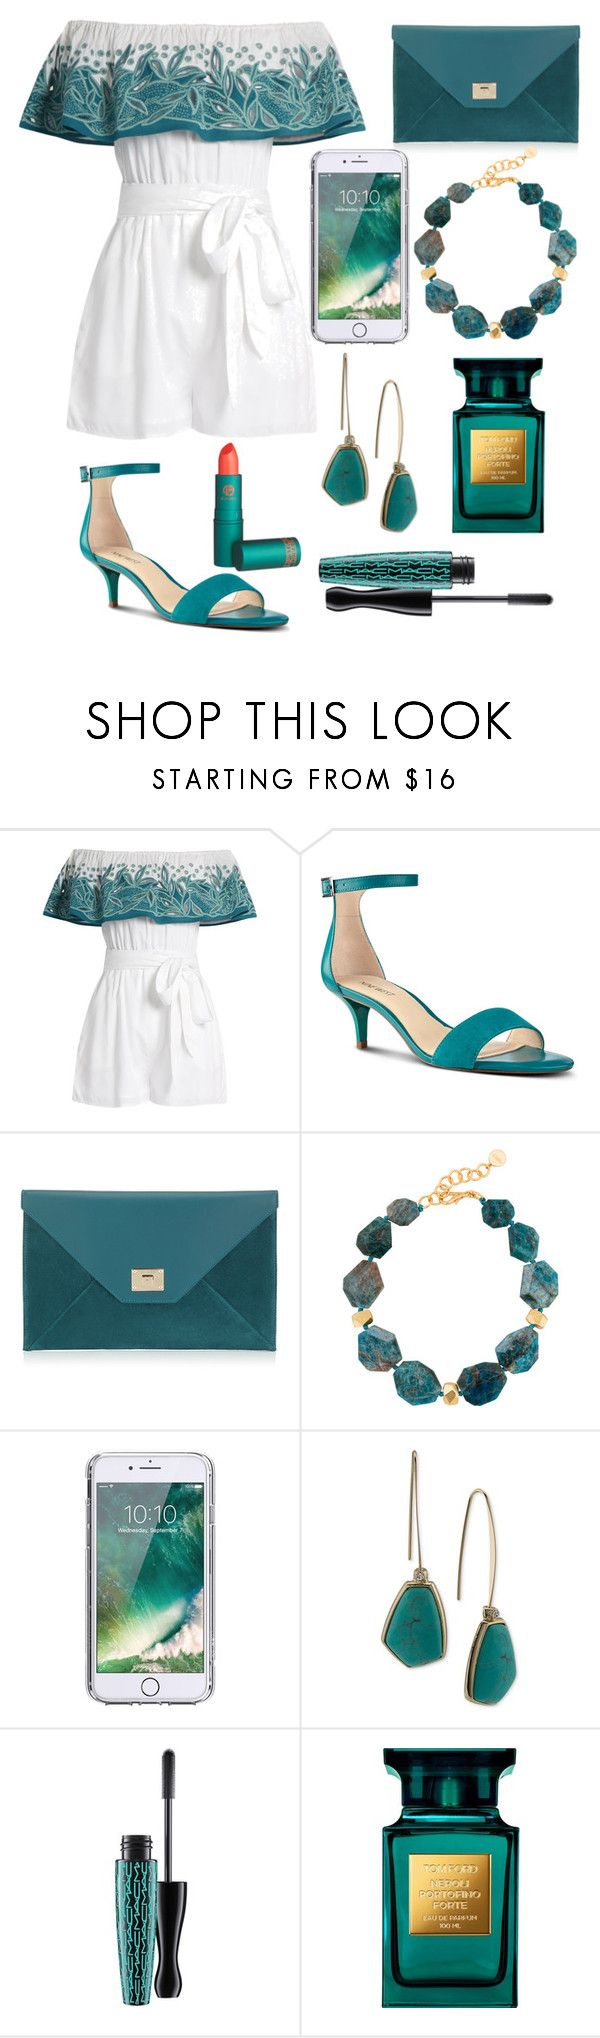 """""""Teal"""" by biajacksonwinchester ❤ liked on Polyvore featuring Mara Hoffman, Nine West, Jimmy Choo, Nest, Griffin, Lauren Ralph Lauren, MAC Cosmetics, Tom Ford and Lipstick Queen"""